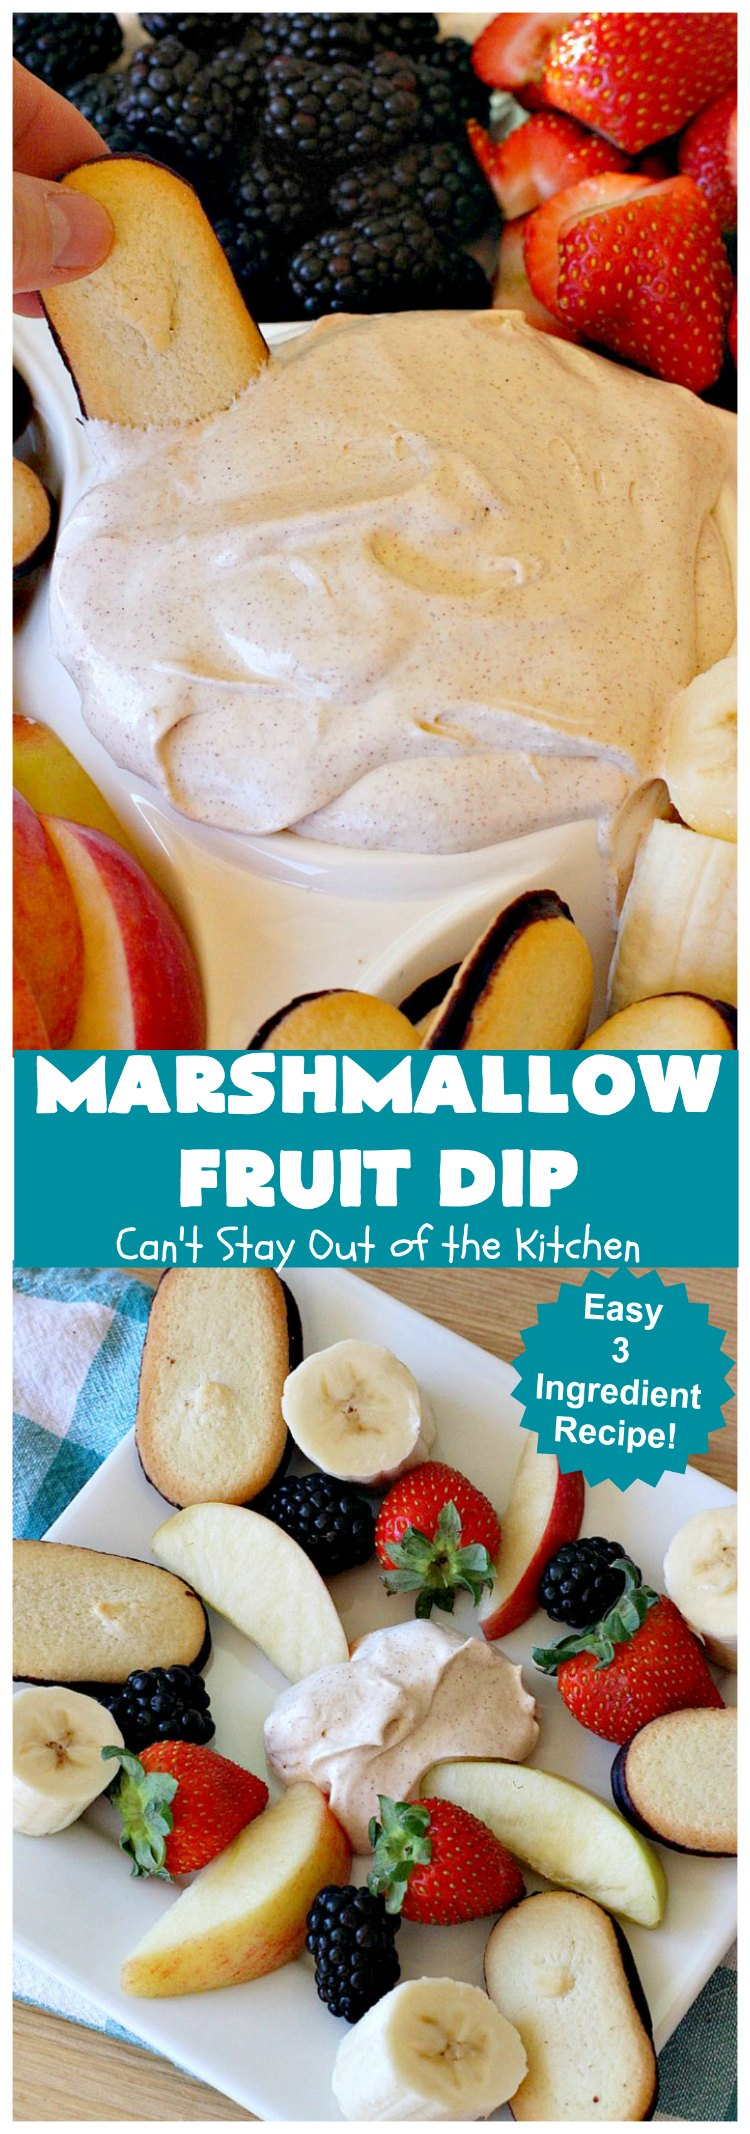 Marshmallow Fruit Dip | Can't Stay Out of the Kitchen | this luscious 3-ingredient #recipe can be whipped up in less than 5 minutes! It's terrific with fresh #fruit, graham crackers or cookies. Wonderful for potlucks or #tailgating parties where you can serve it as an #appetizer or as a #dessert. #GlutenFree #GlutenFreeAppetizer #GlutenFreeDessert #MarshmallowFruitDip